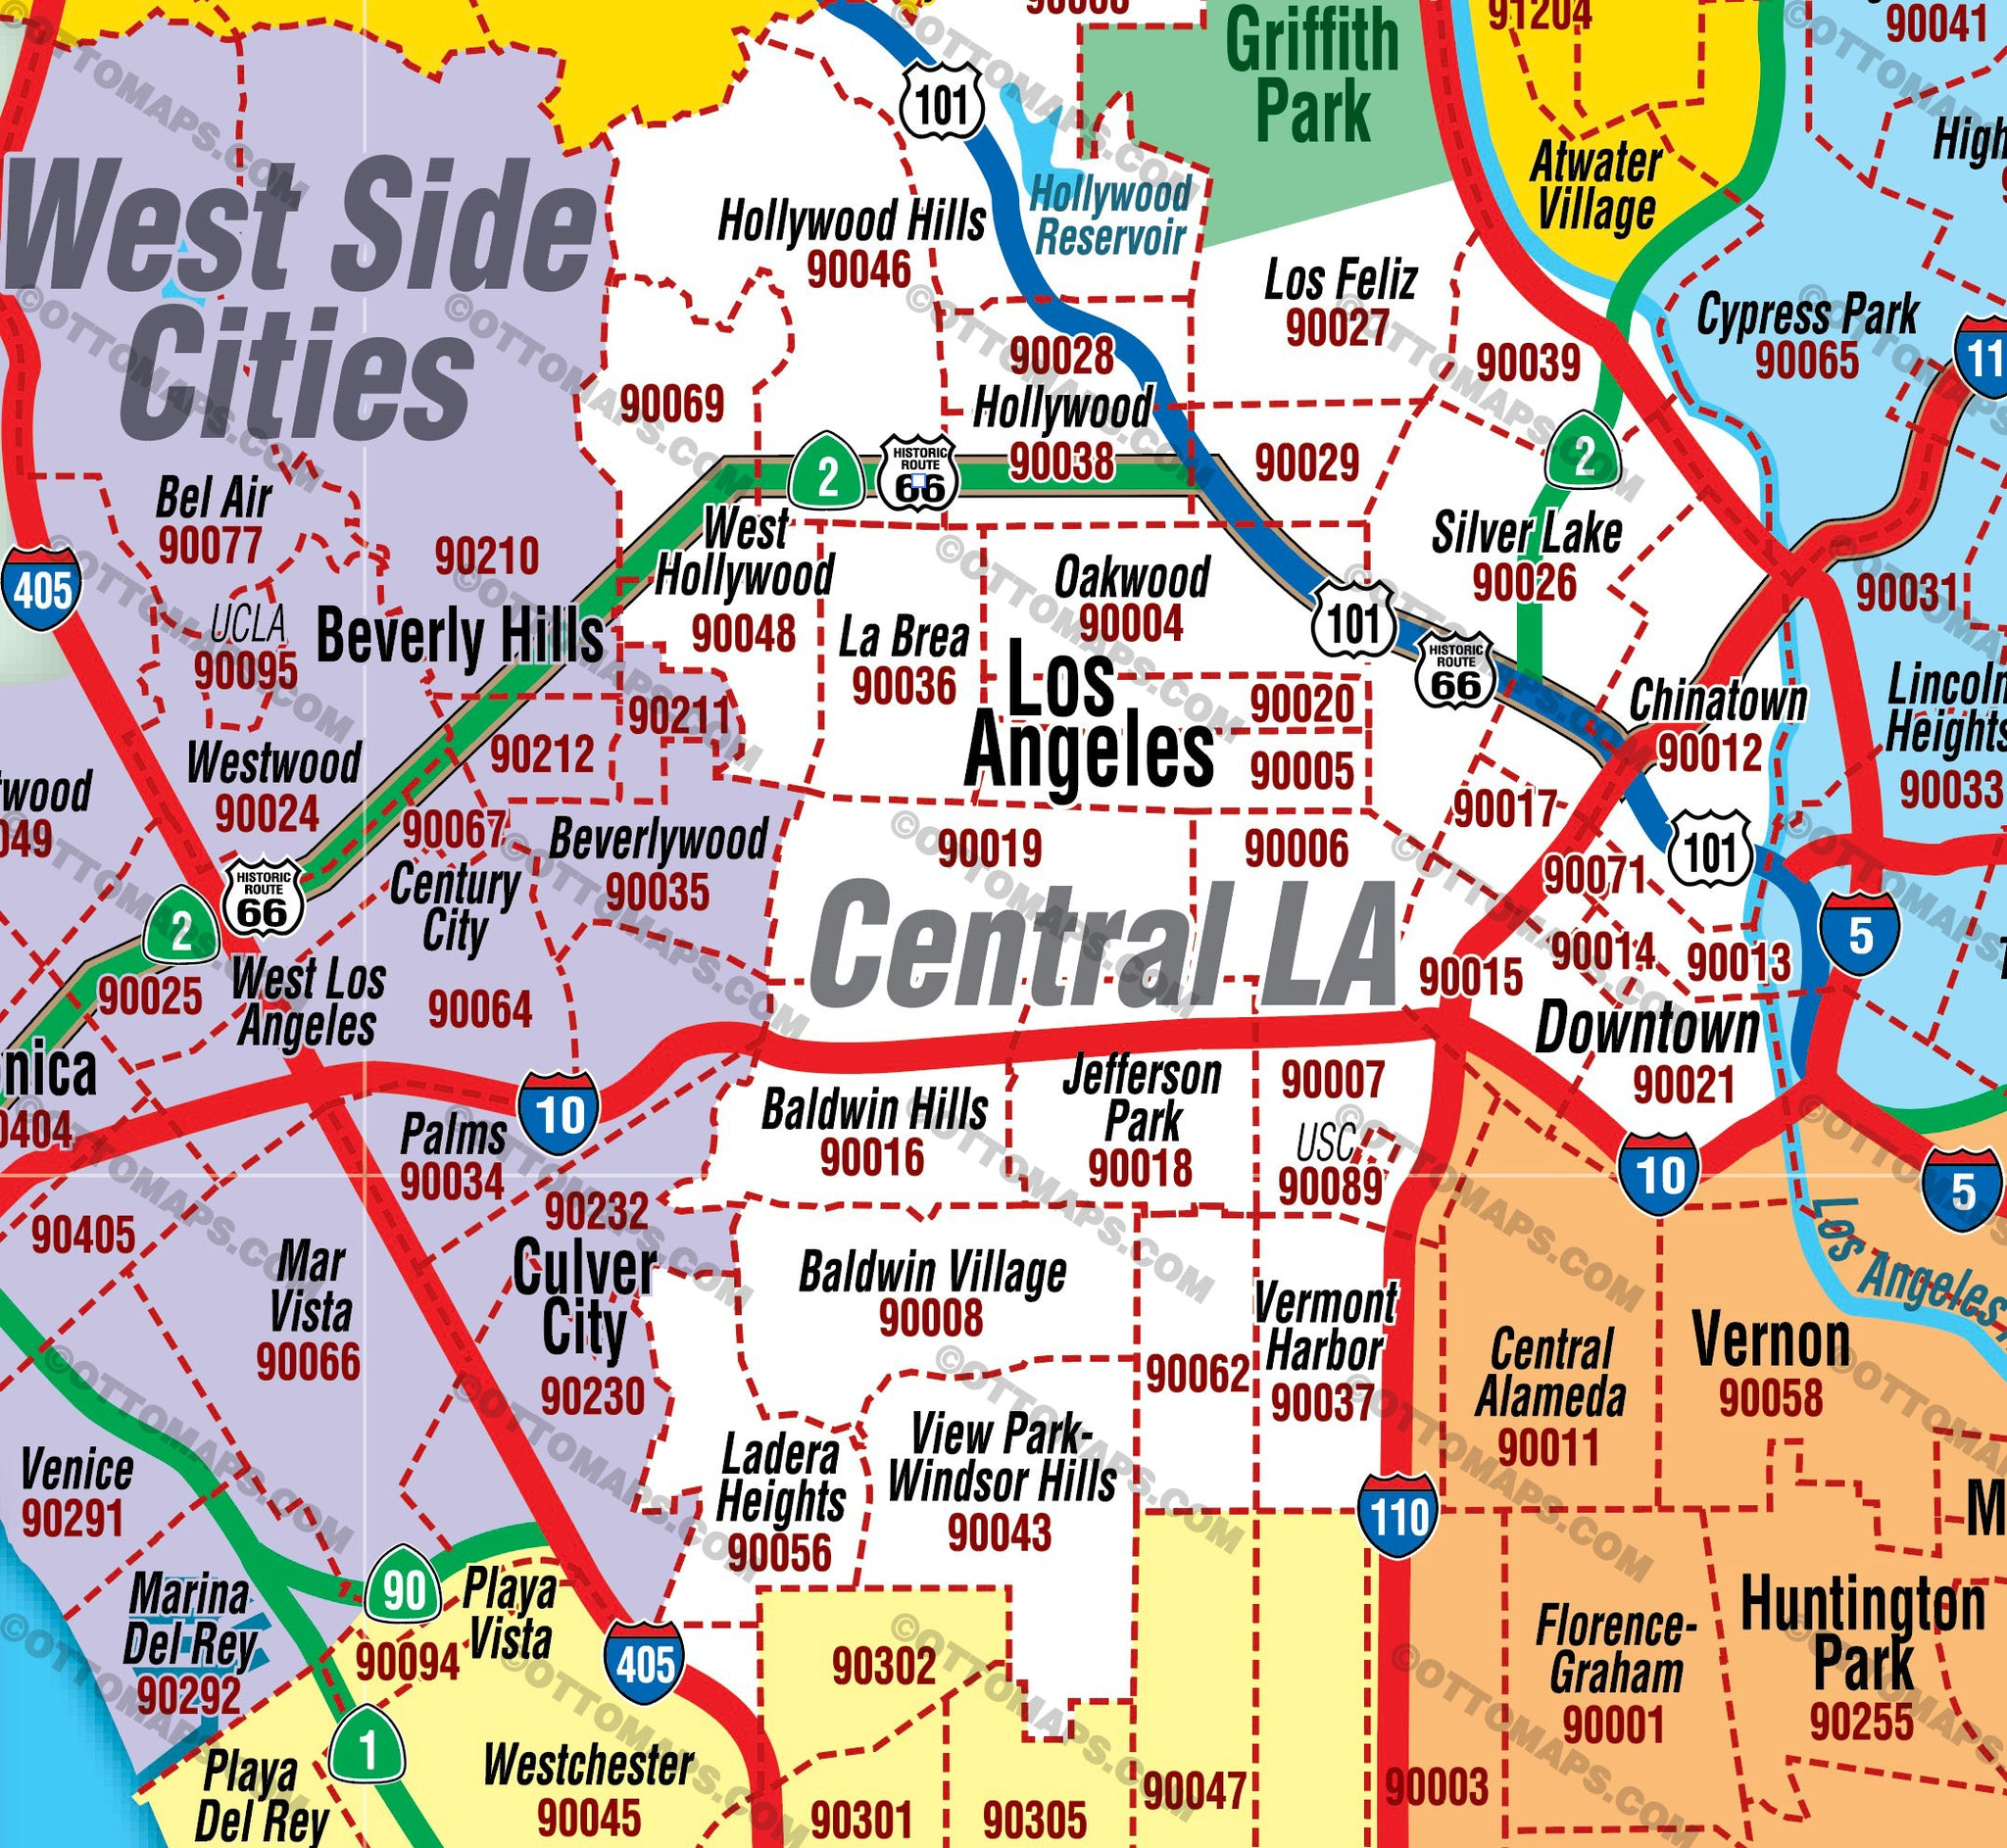 Los Angeles Zip Code Map   SOUTH County Areas colorized